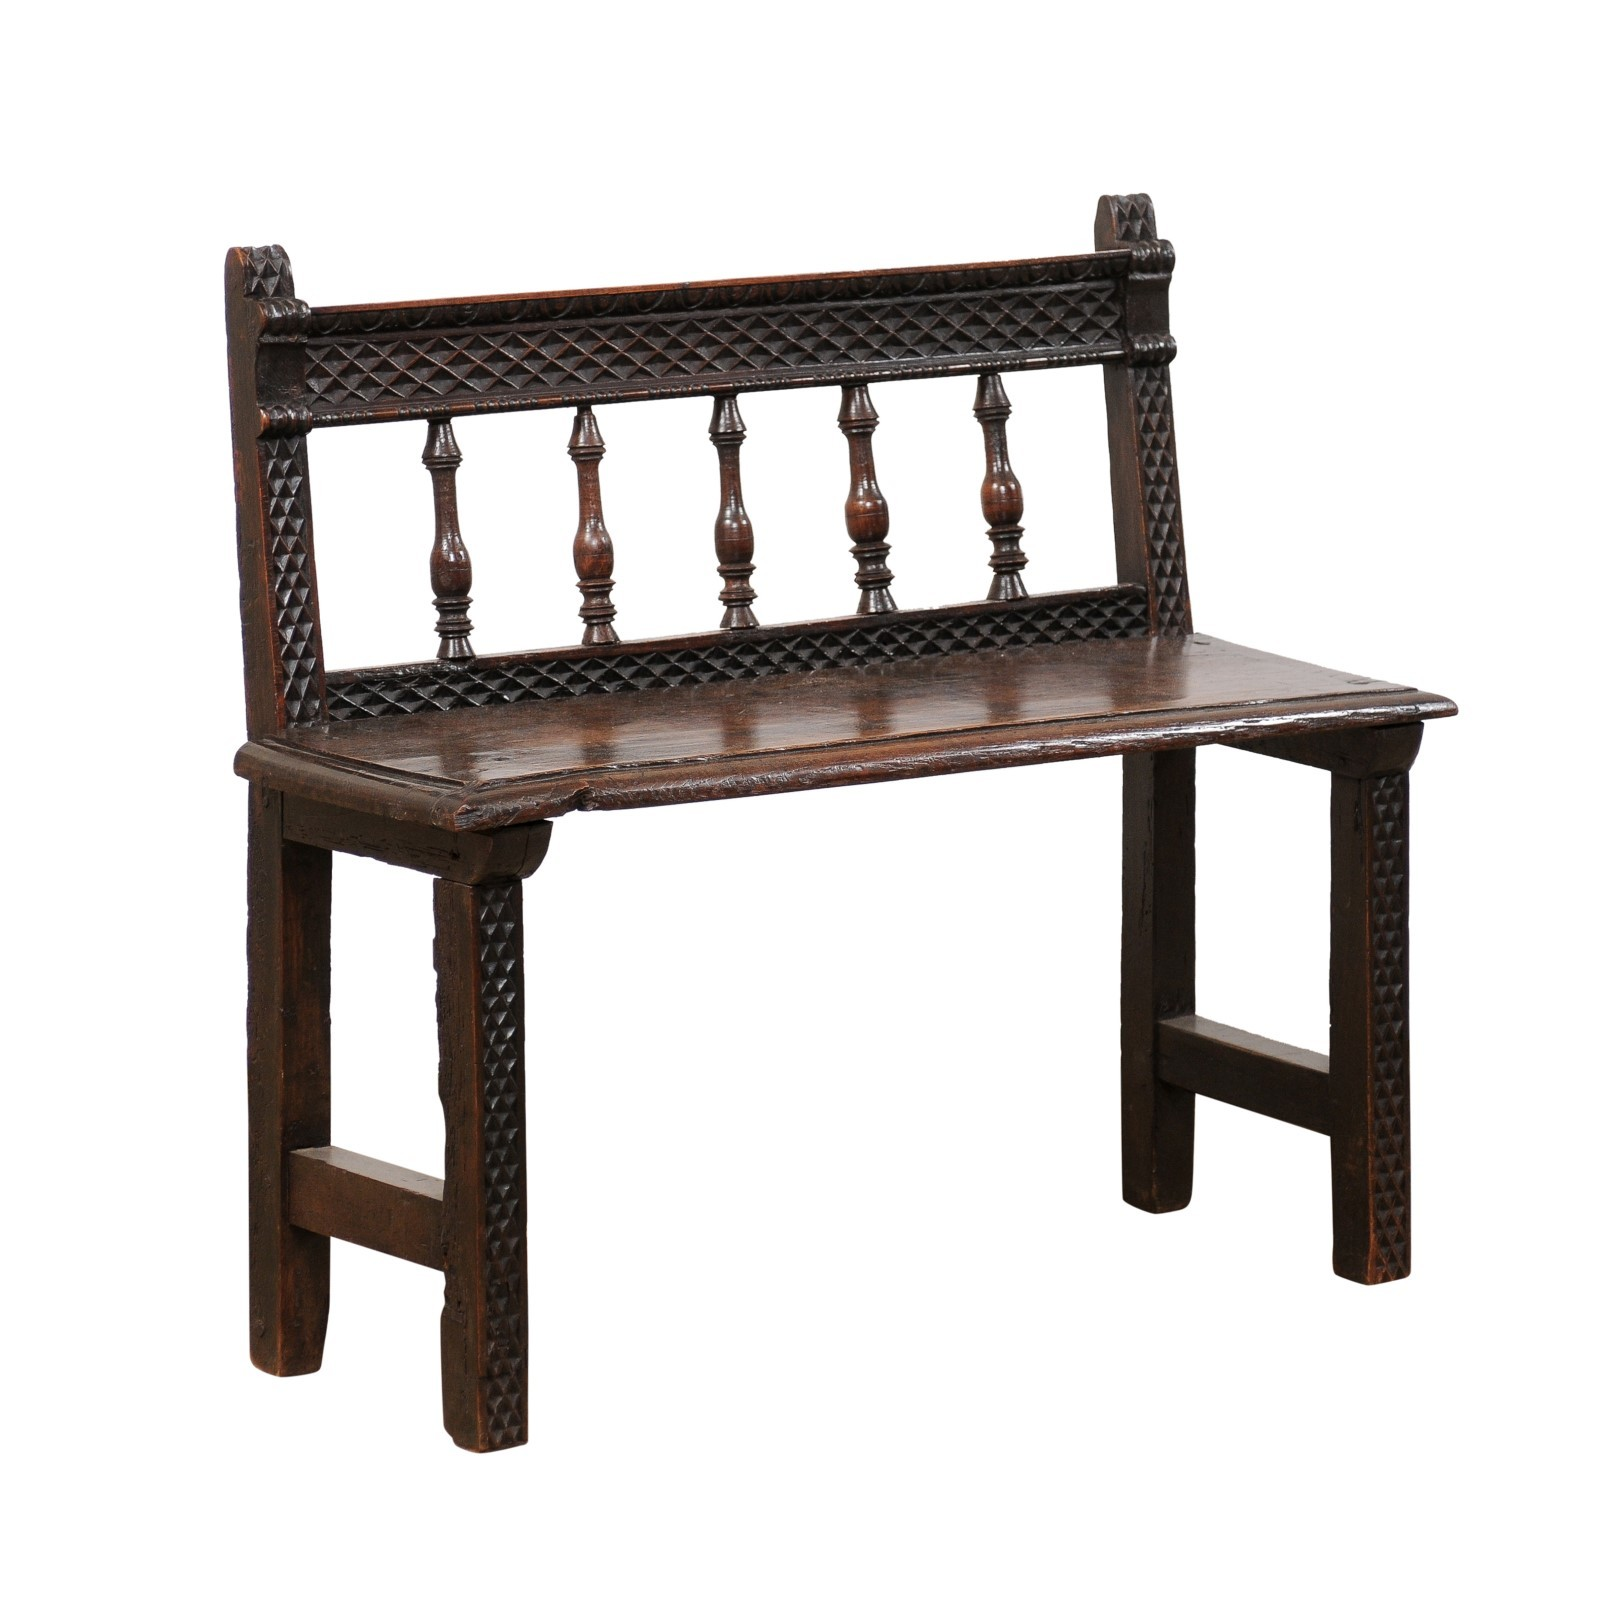 18th C. Spanish Cute-Size Entry Hall Bench